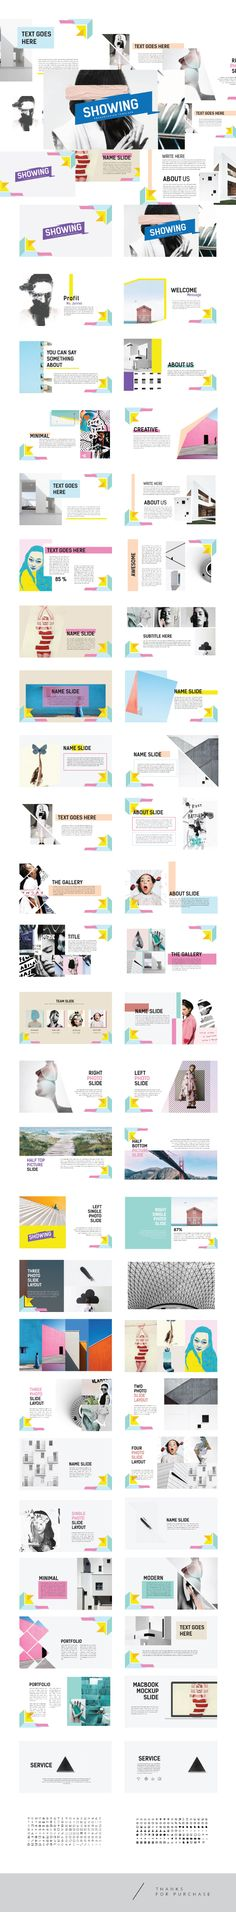 ShowUp - Multipurpose Creative Template Keynote - Miscellaneous Keynote Templates